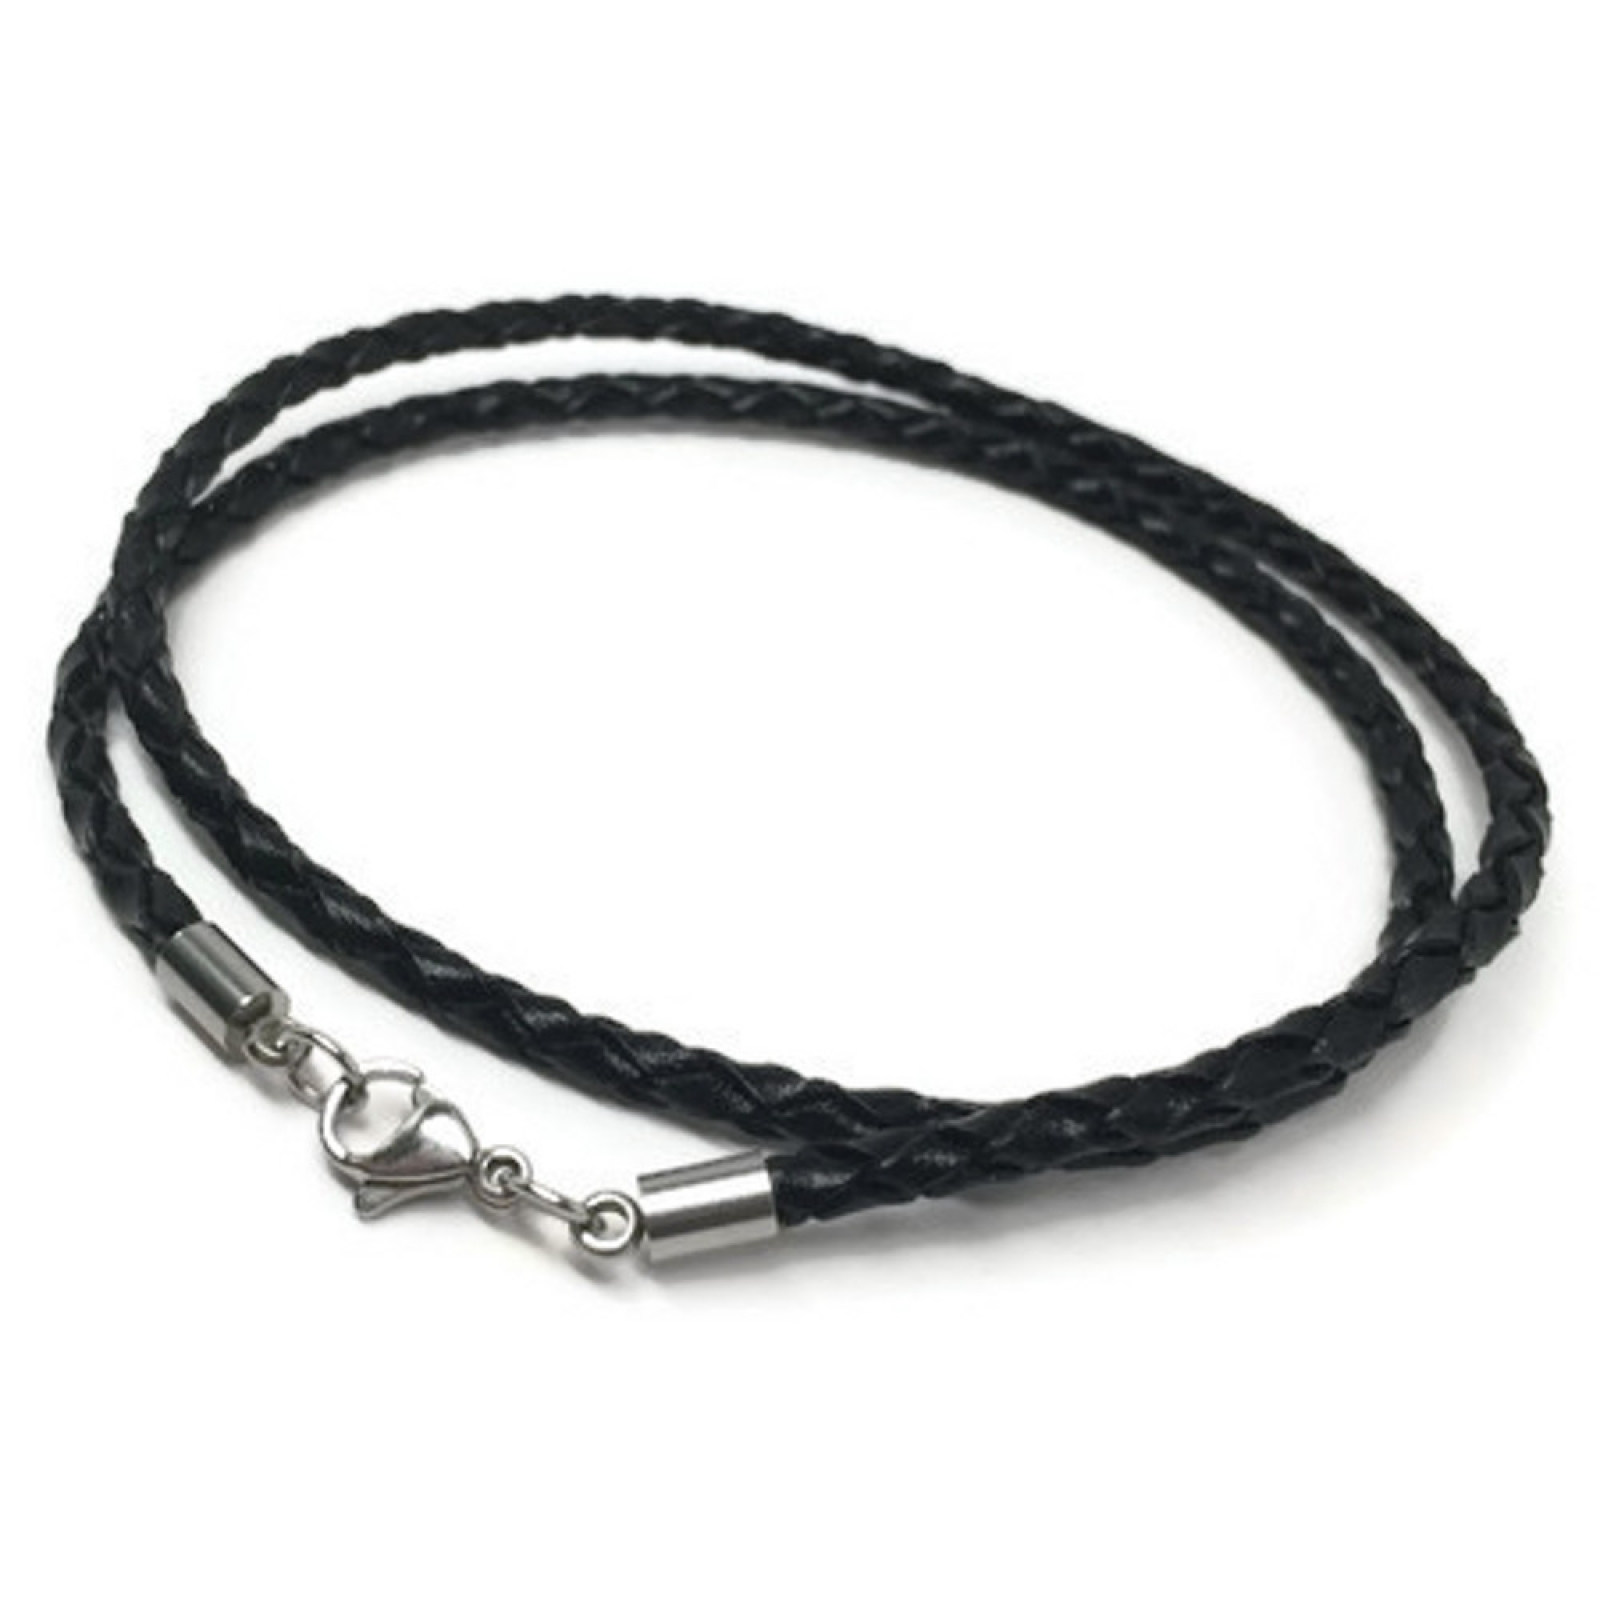 barrel pbx hc black necklace fits bj pandora jewelry clasp compatible bling silver leather